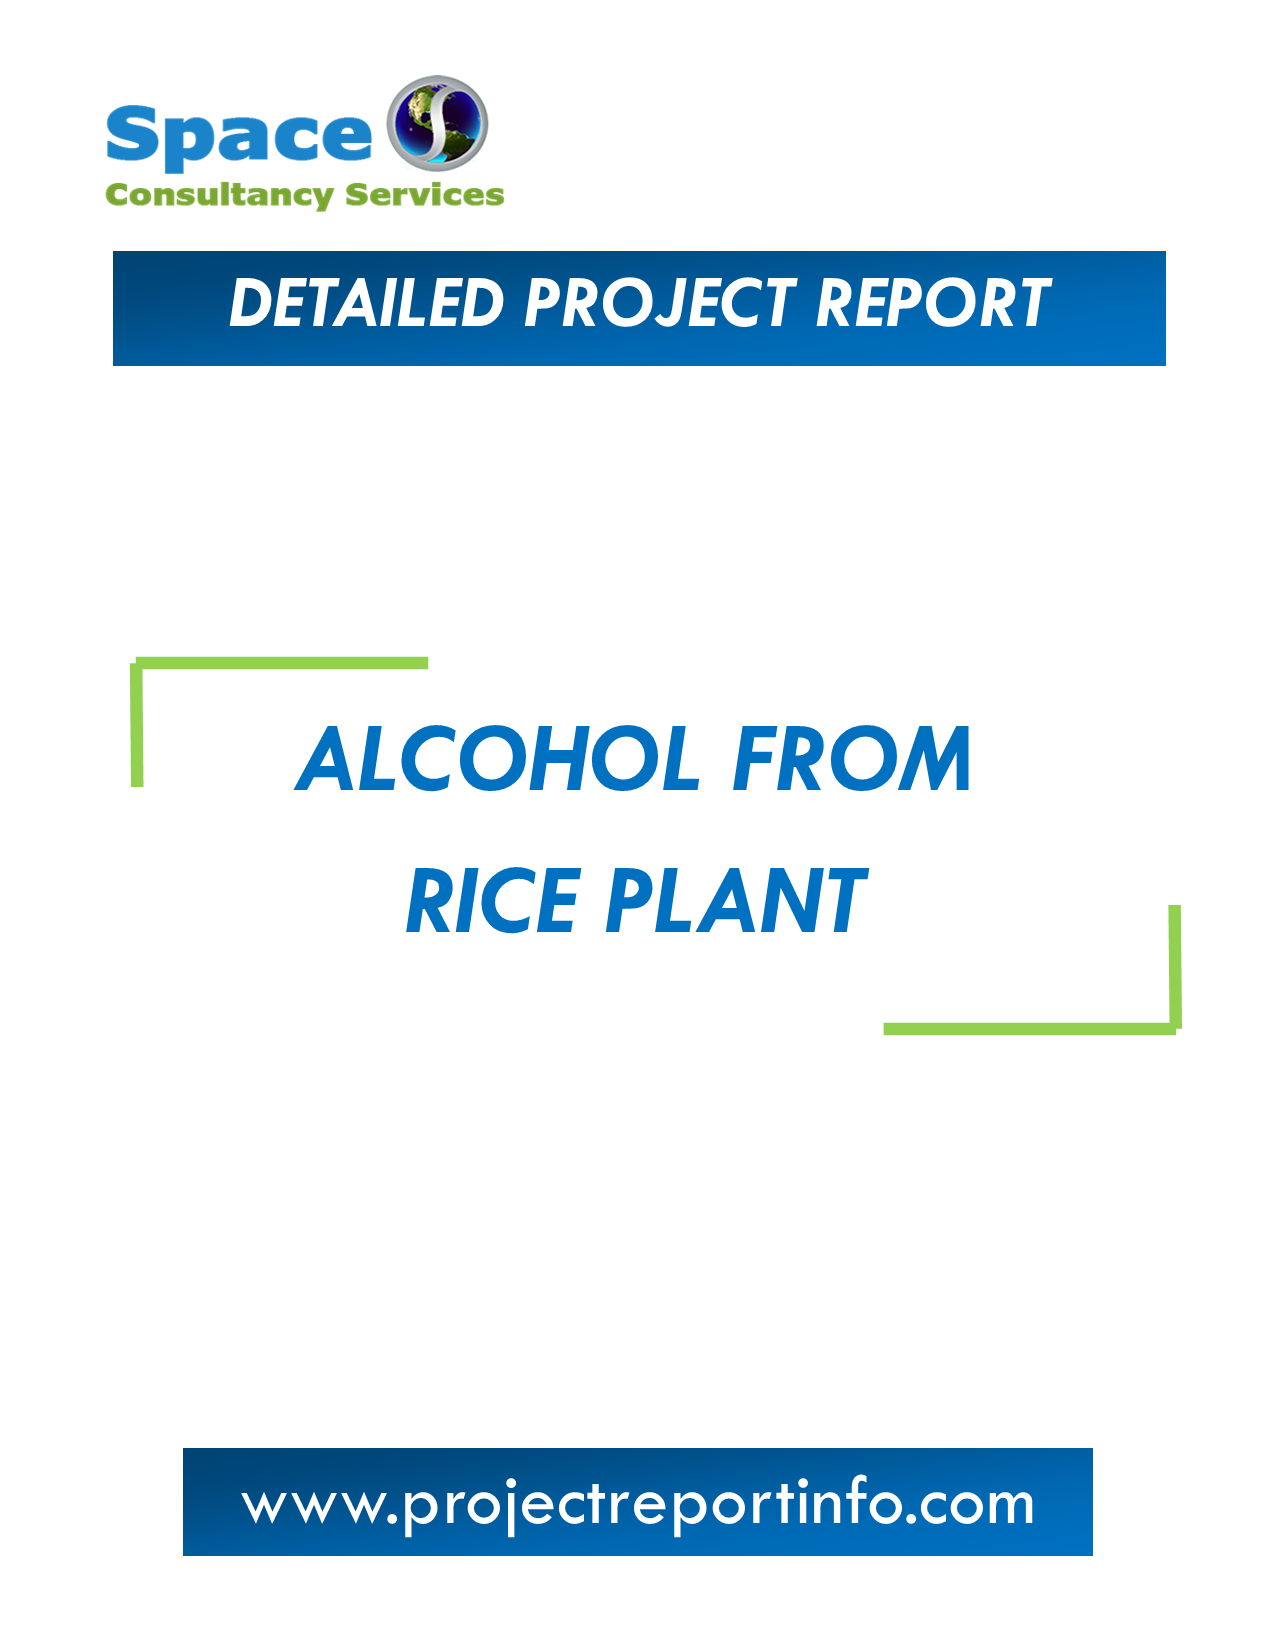 Project Report on Alcohol from Rice Plant